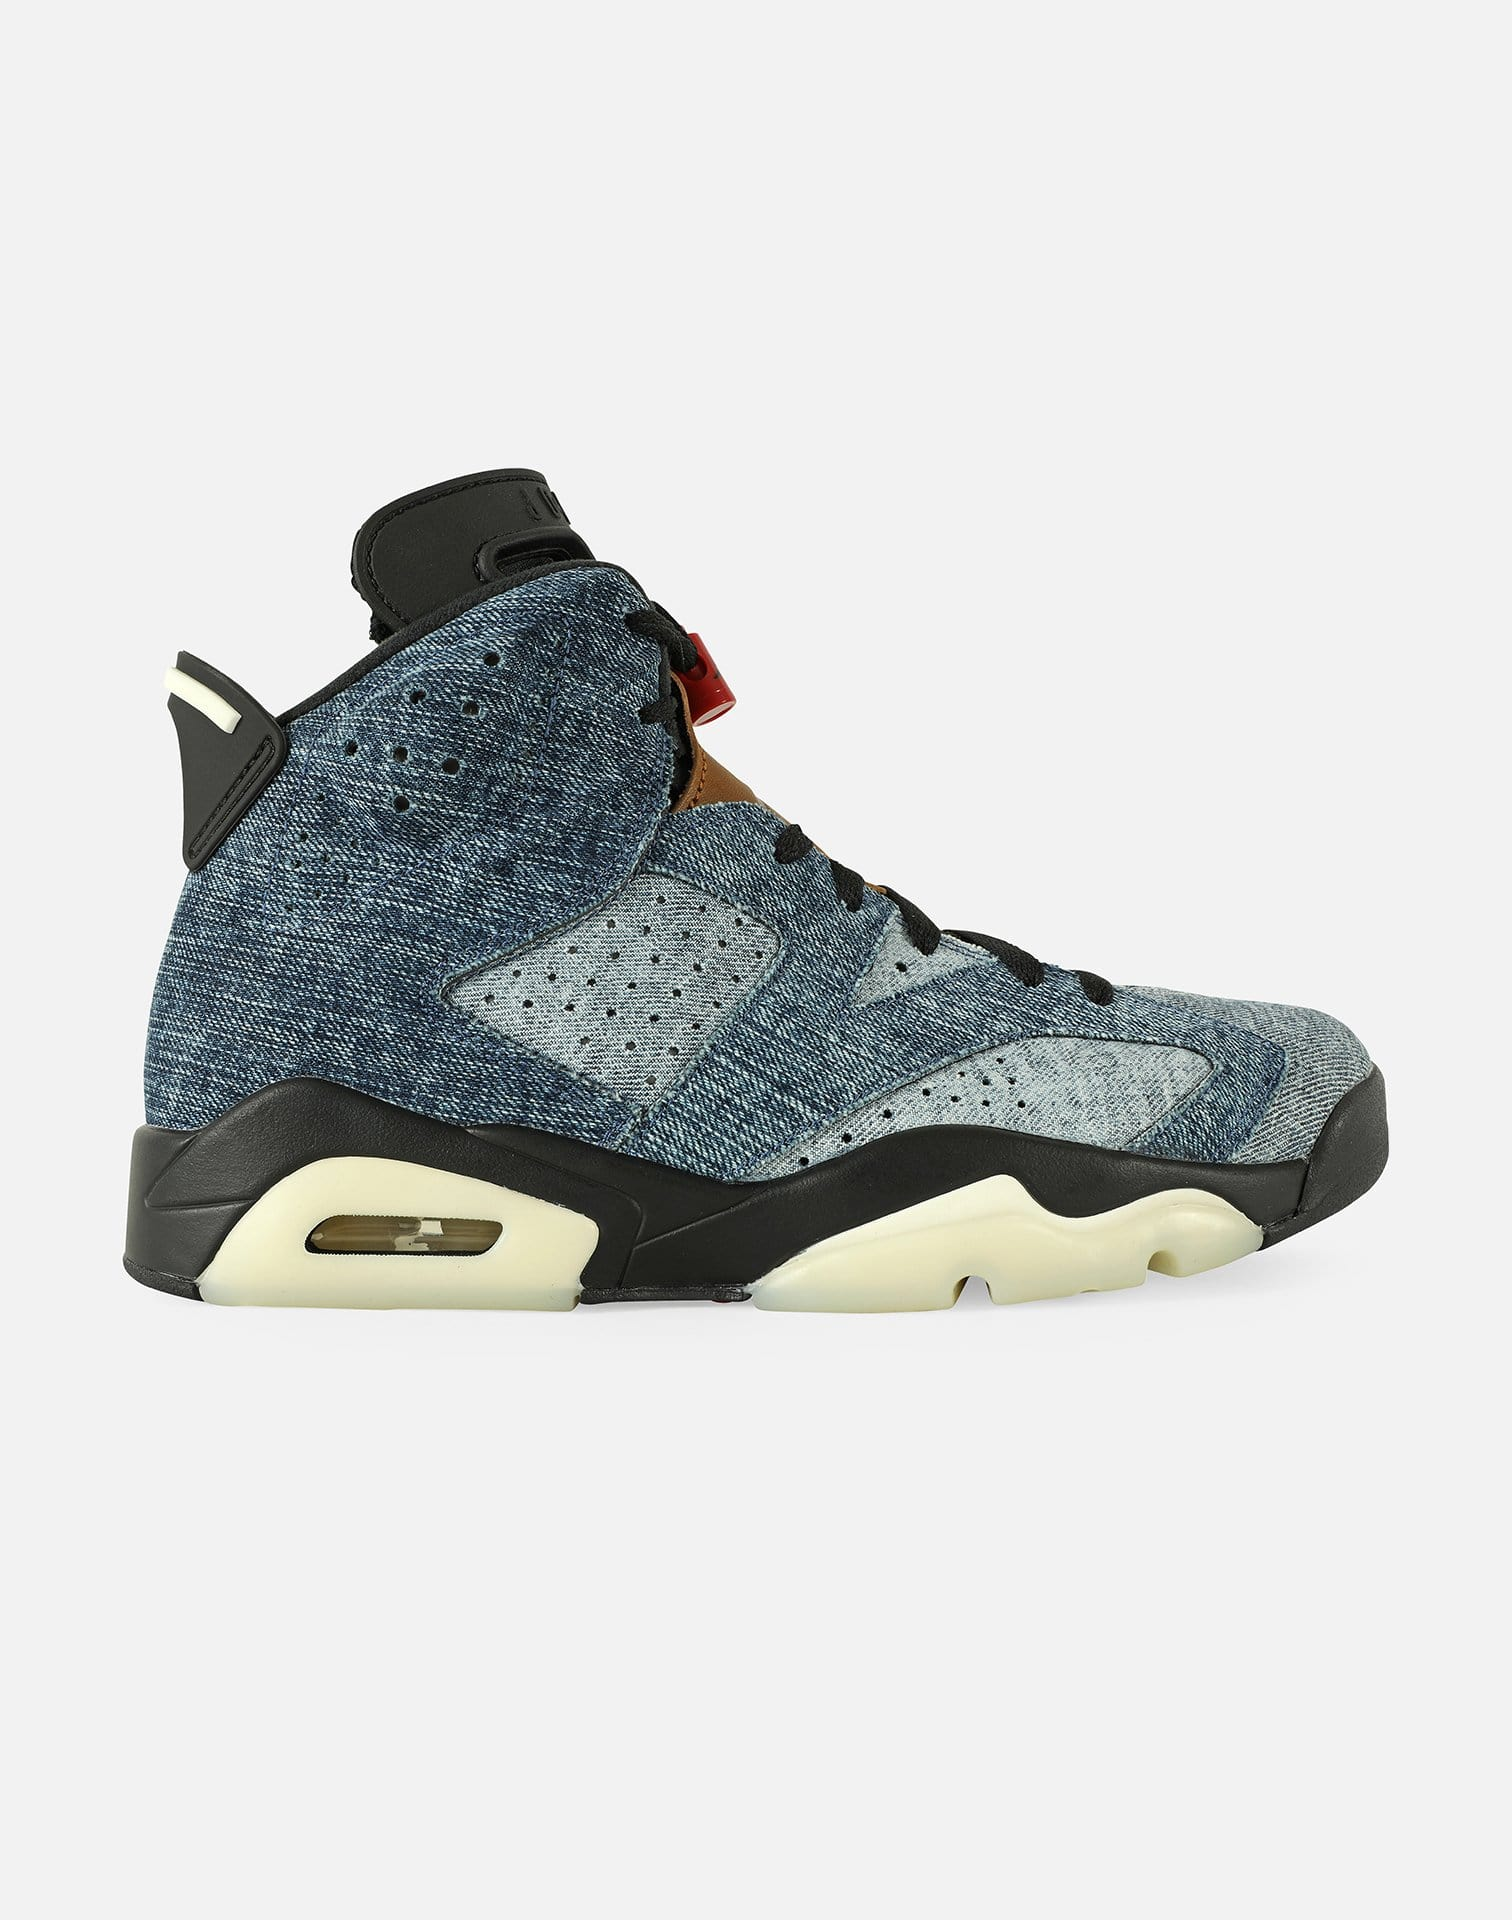 Jordan AIR JORDAN RETRO 6 'DENIM'